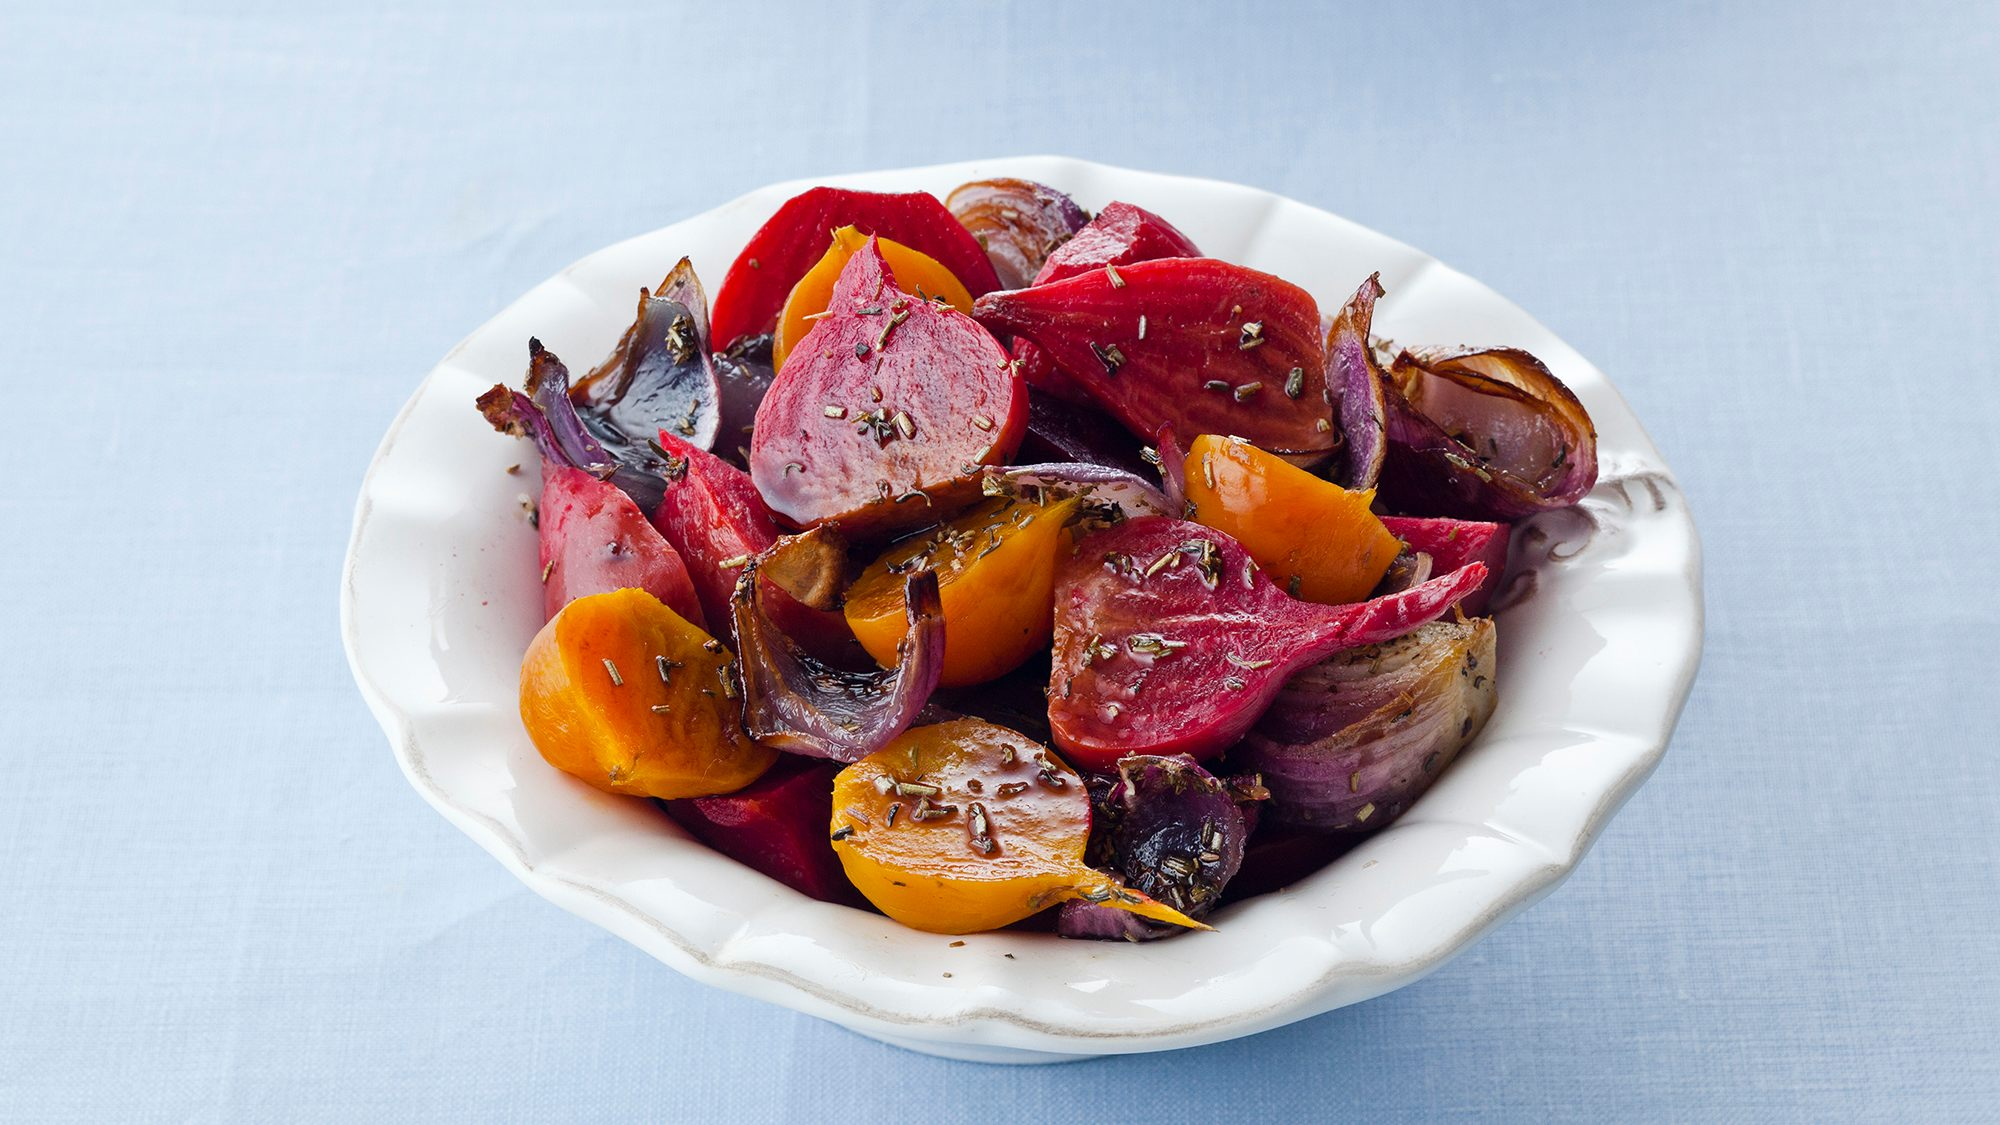 McCormick Gourmet Roasted Balsamic Beets